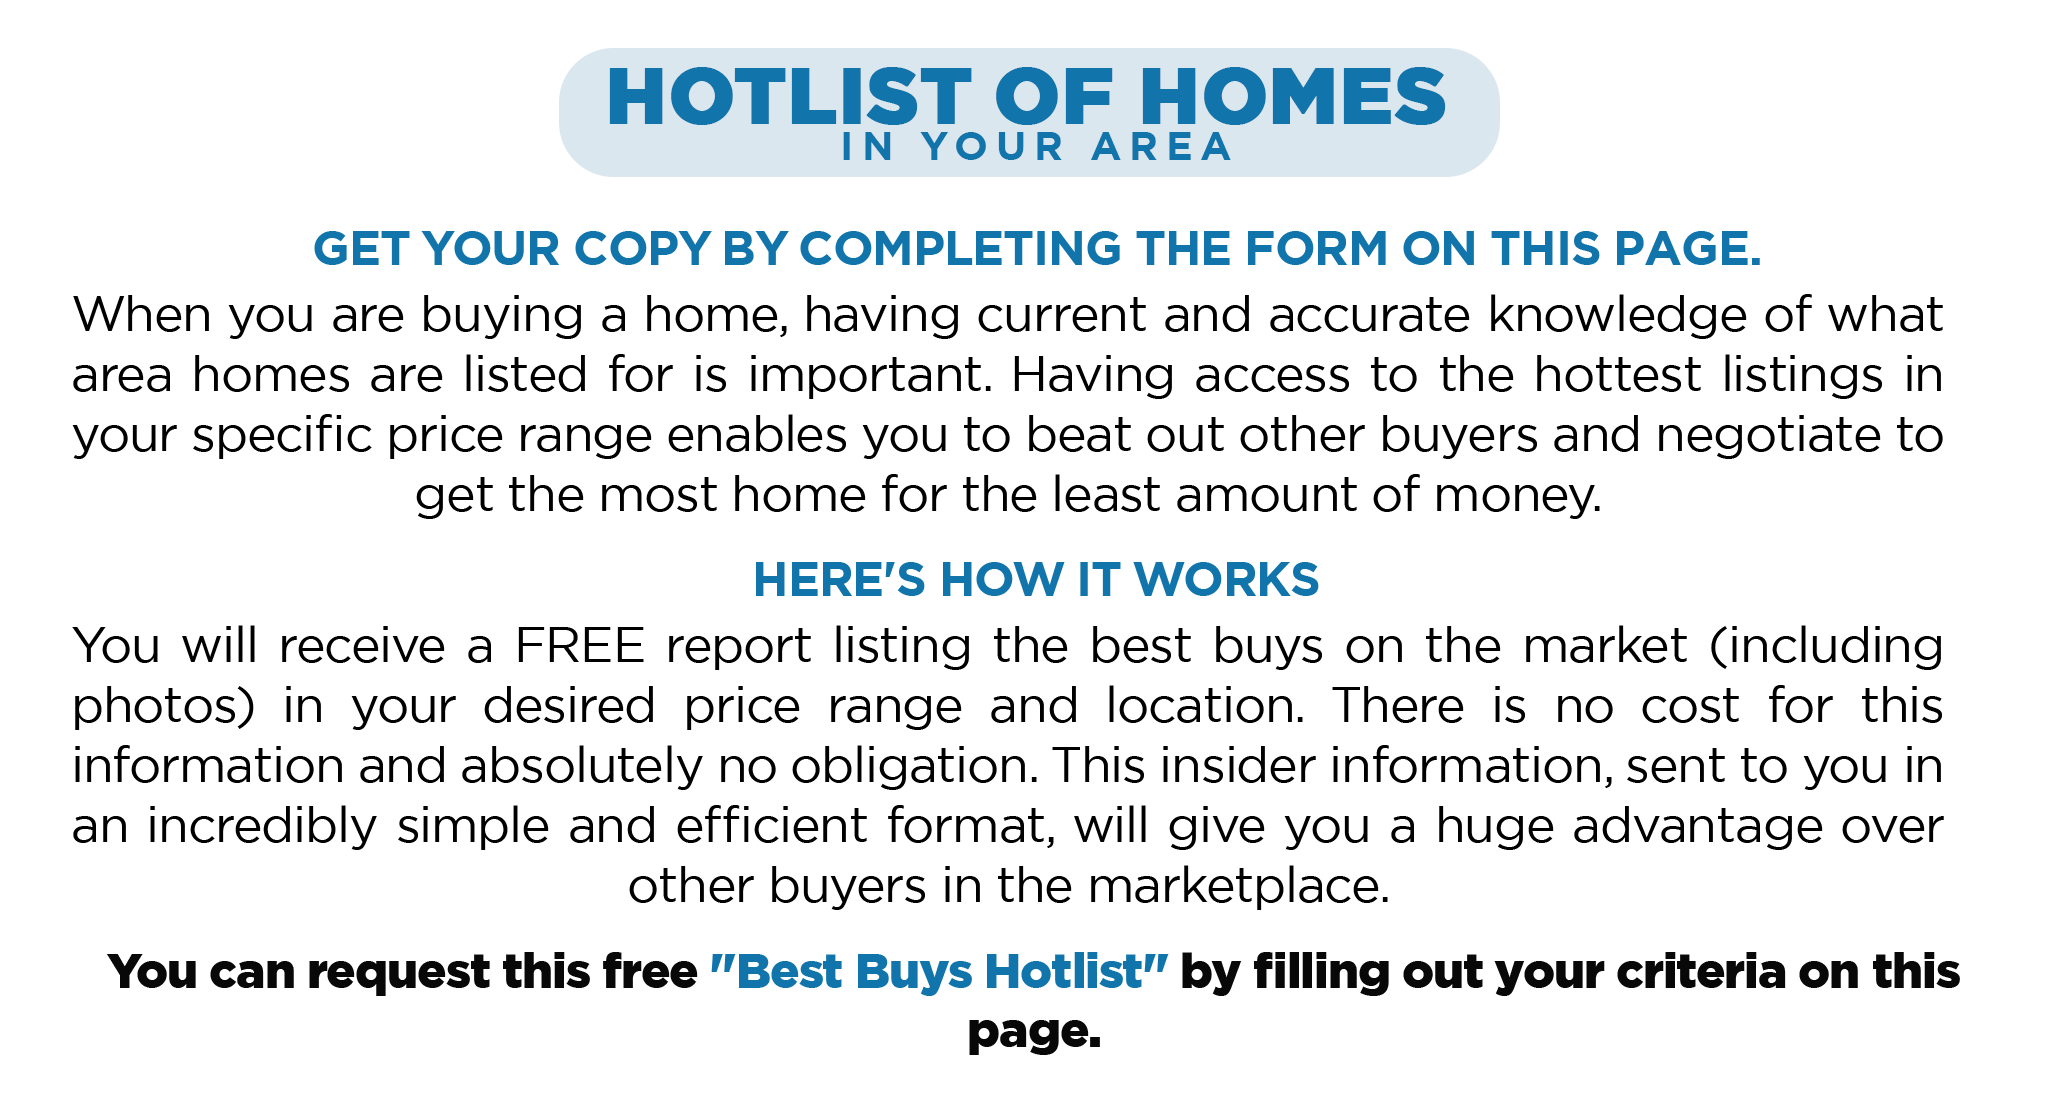 HOTLIST OF HOMES TEASER TEXT.png